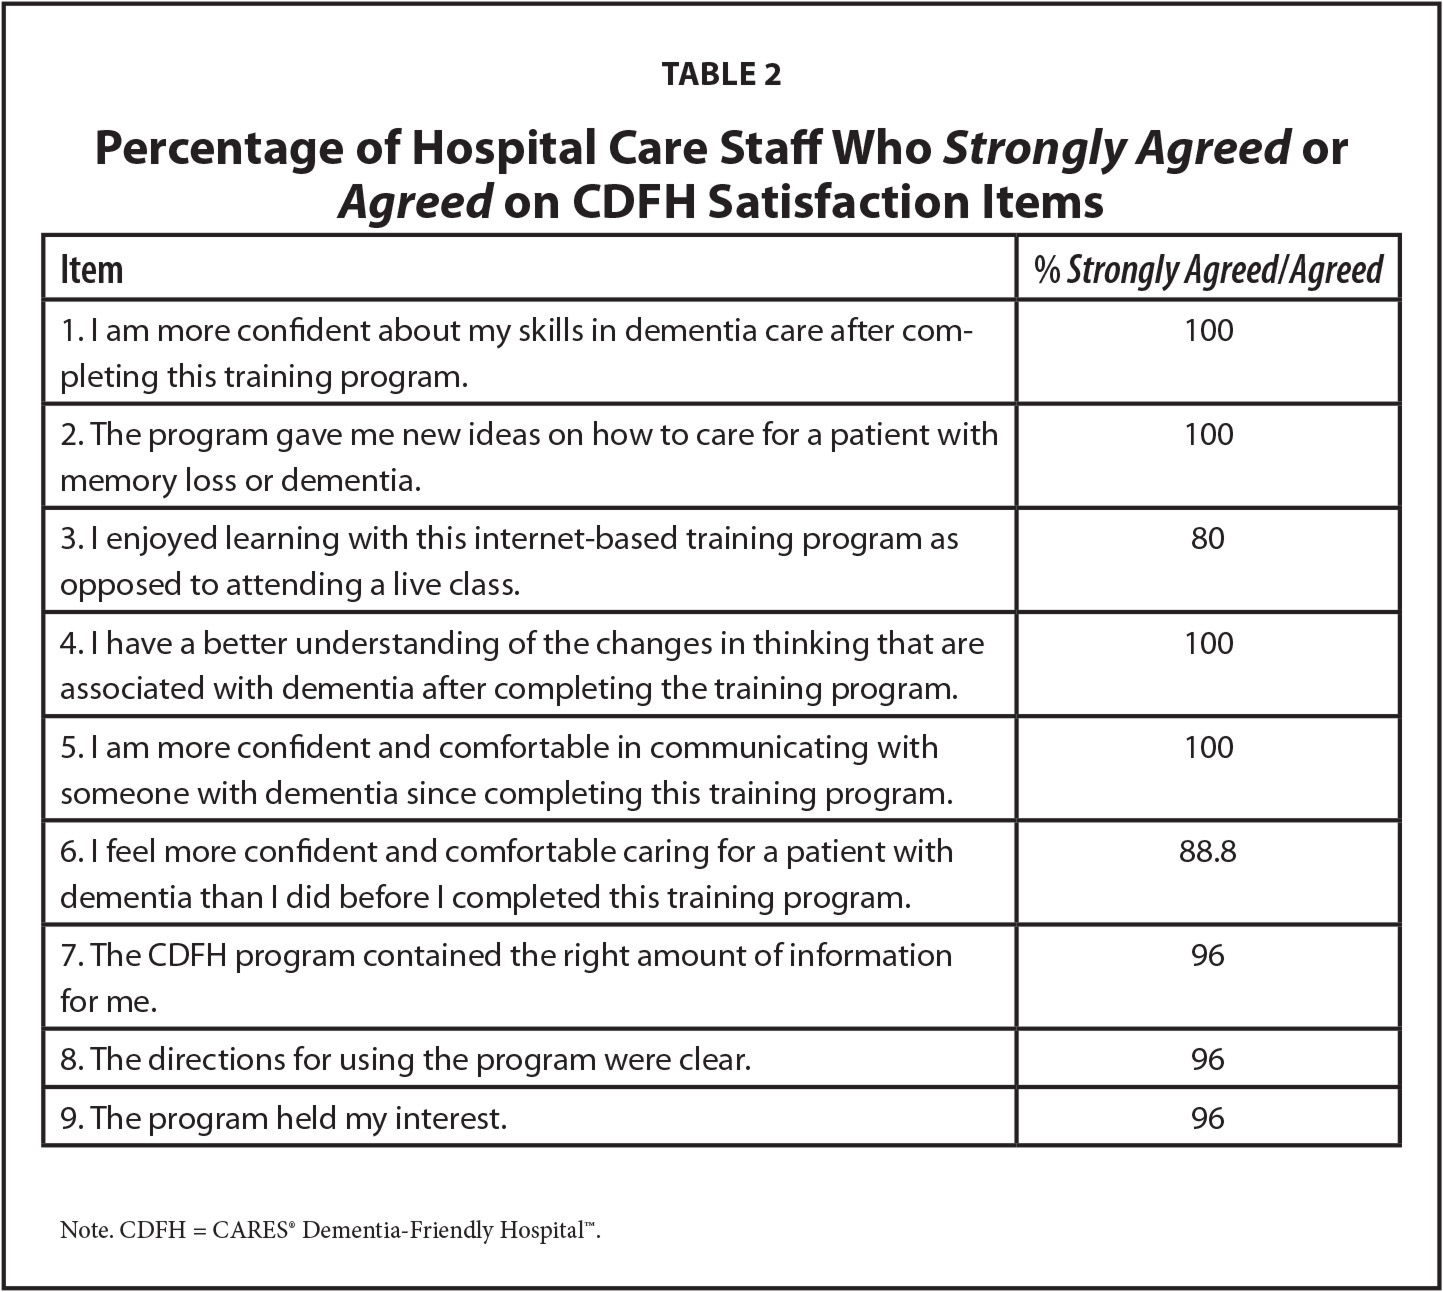 Percentage of Hospital Care Staff Who Strongly Agreed or Agreed on CDFH Satisfaction Items